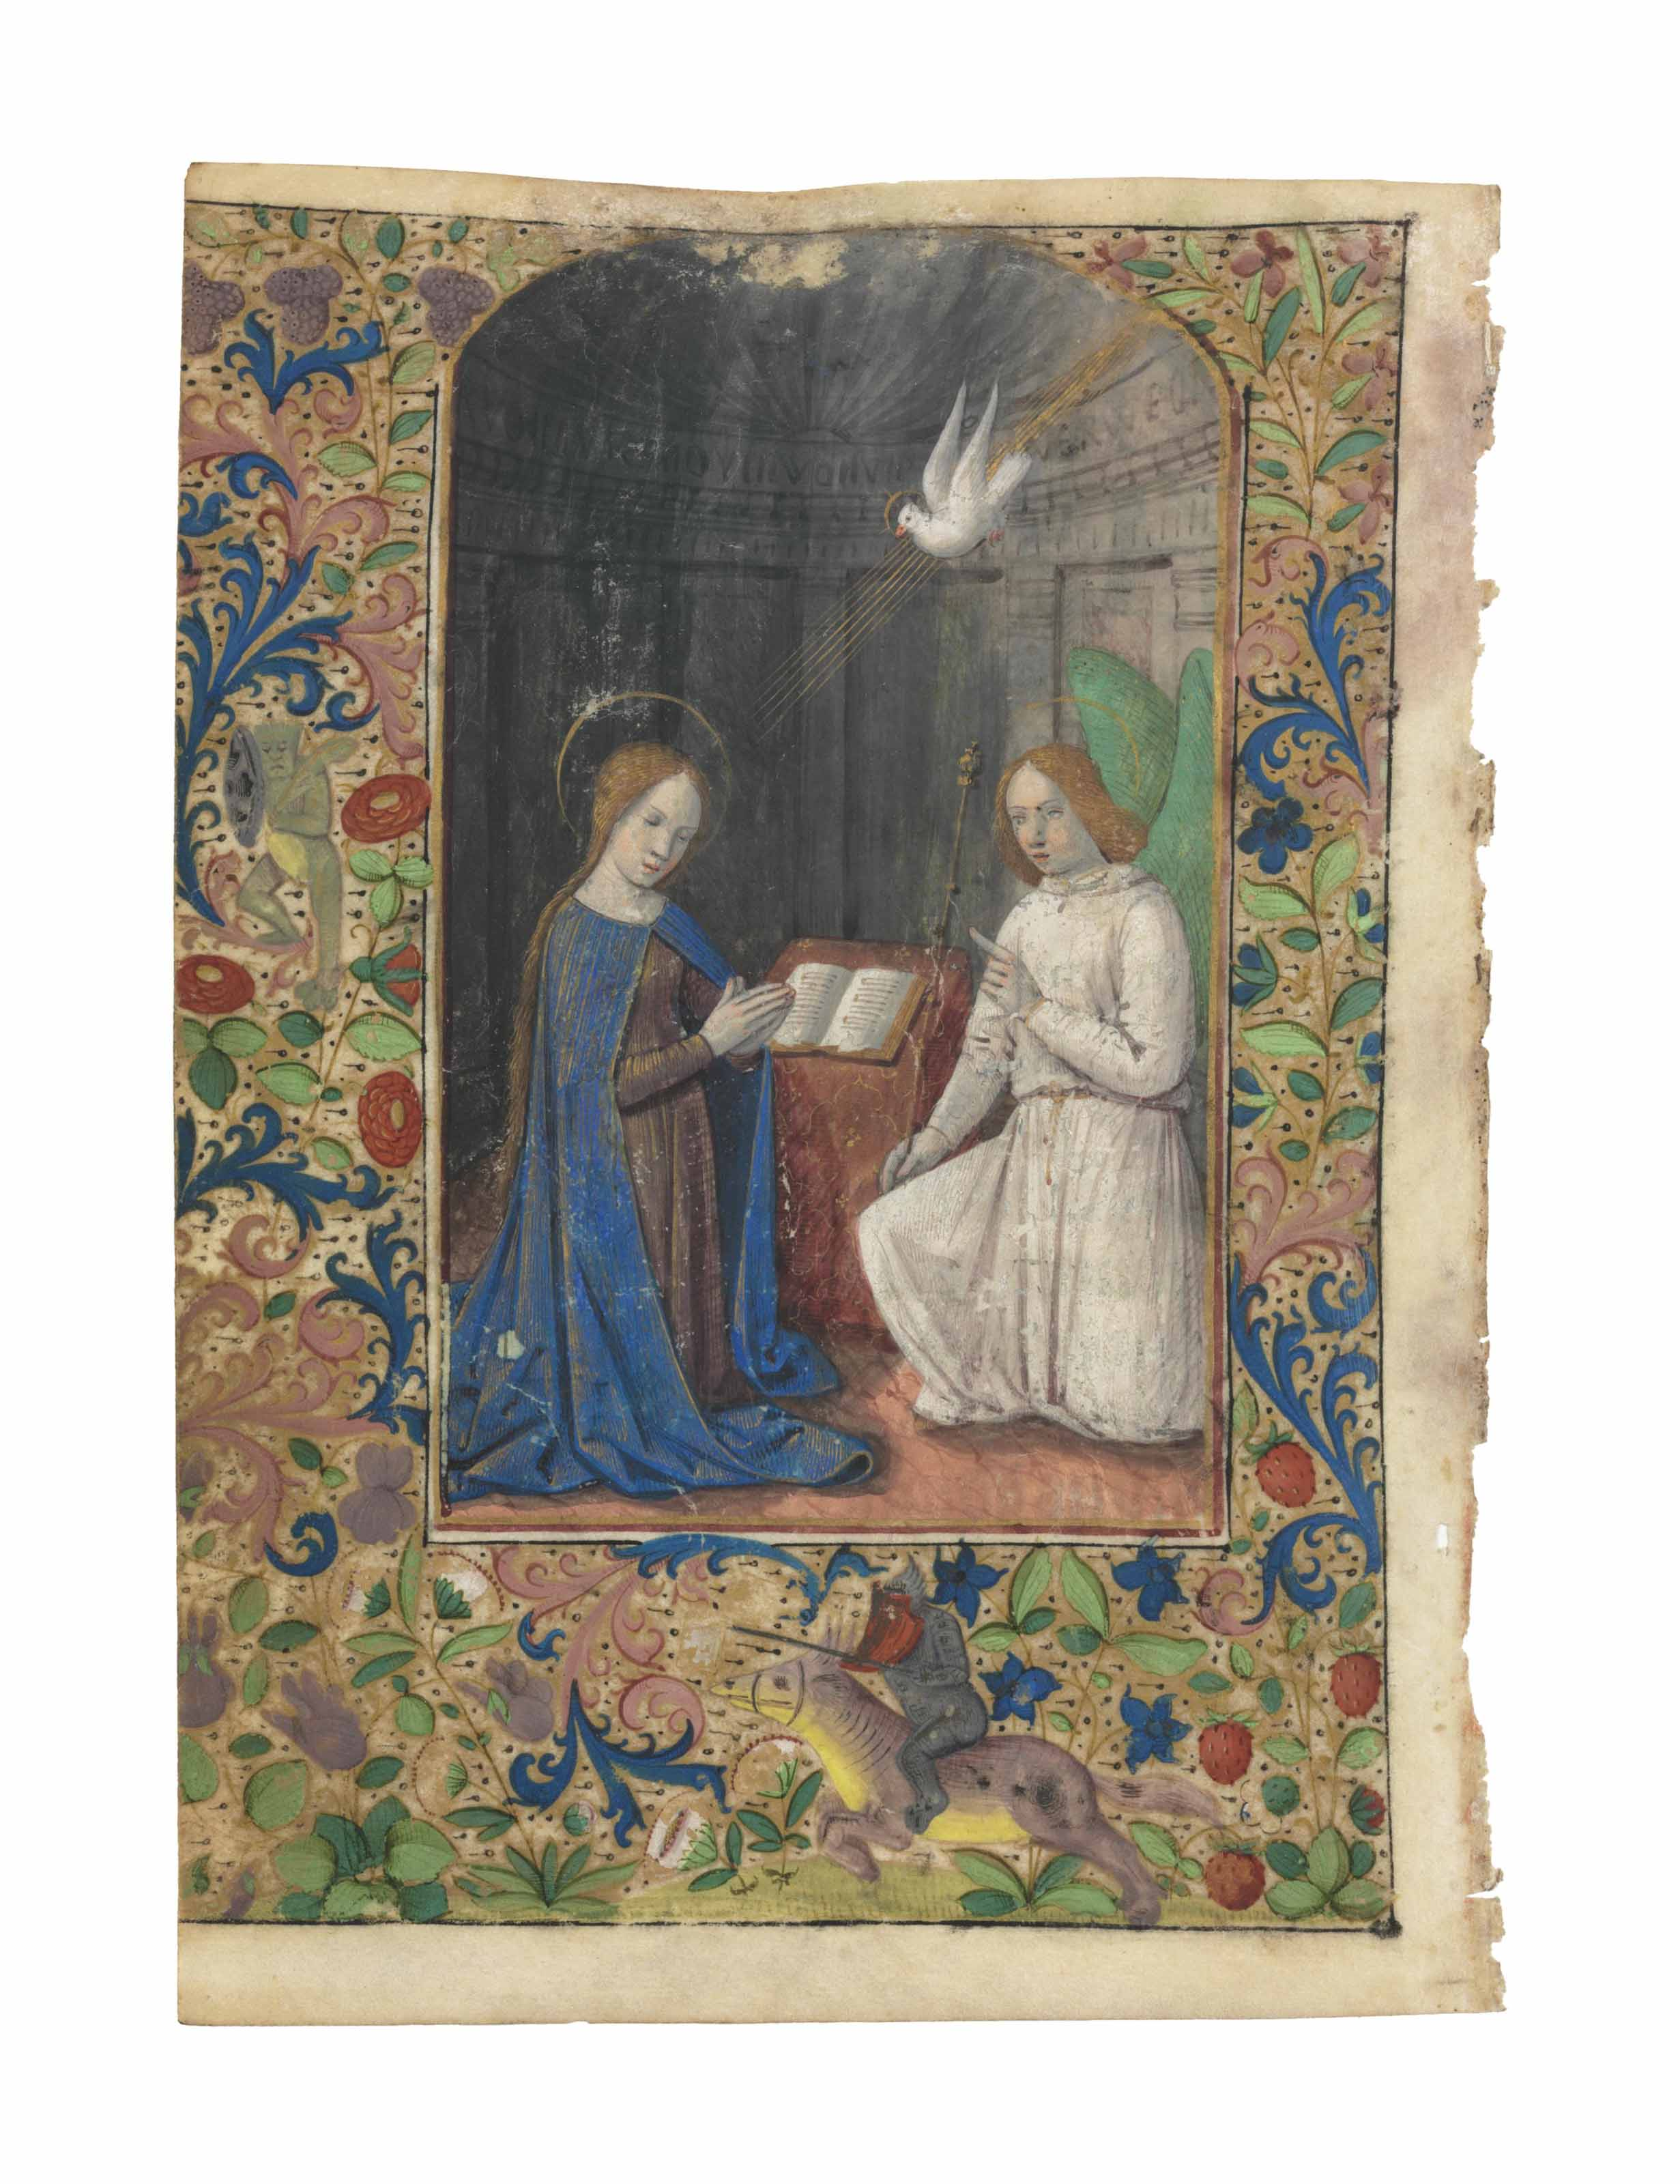 THE ANNUNCIATION, full-page mi